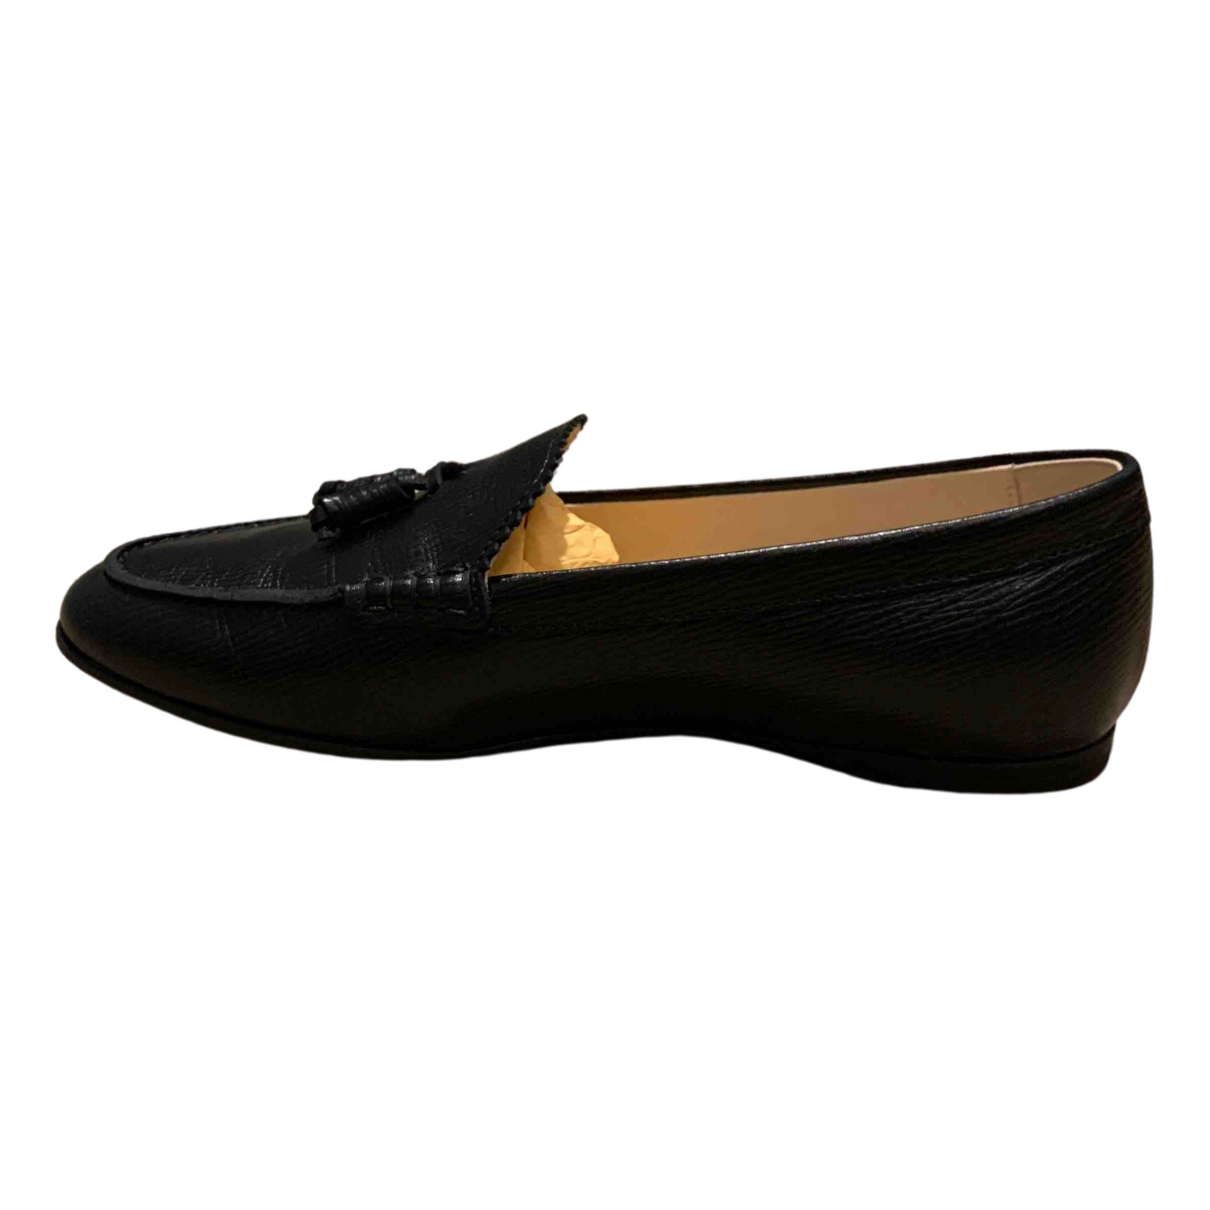 Tod's \N Black Leather Flats for Women 35.5 EU